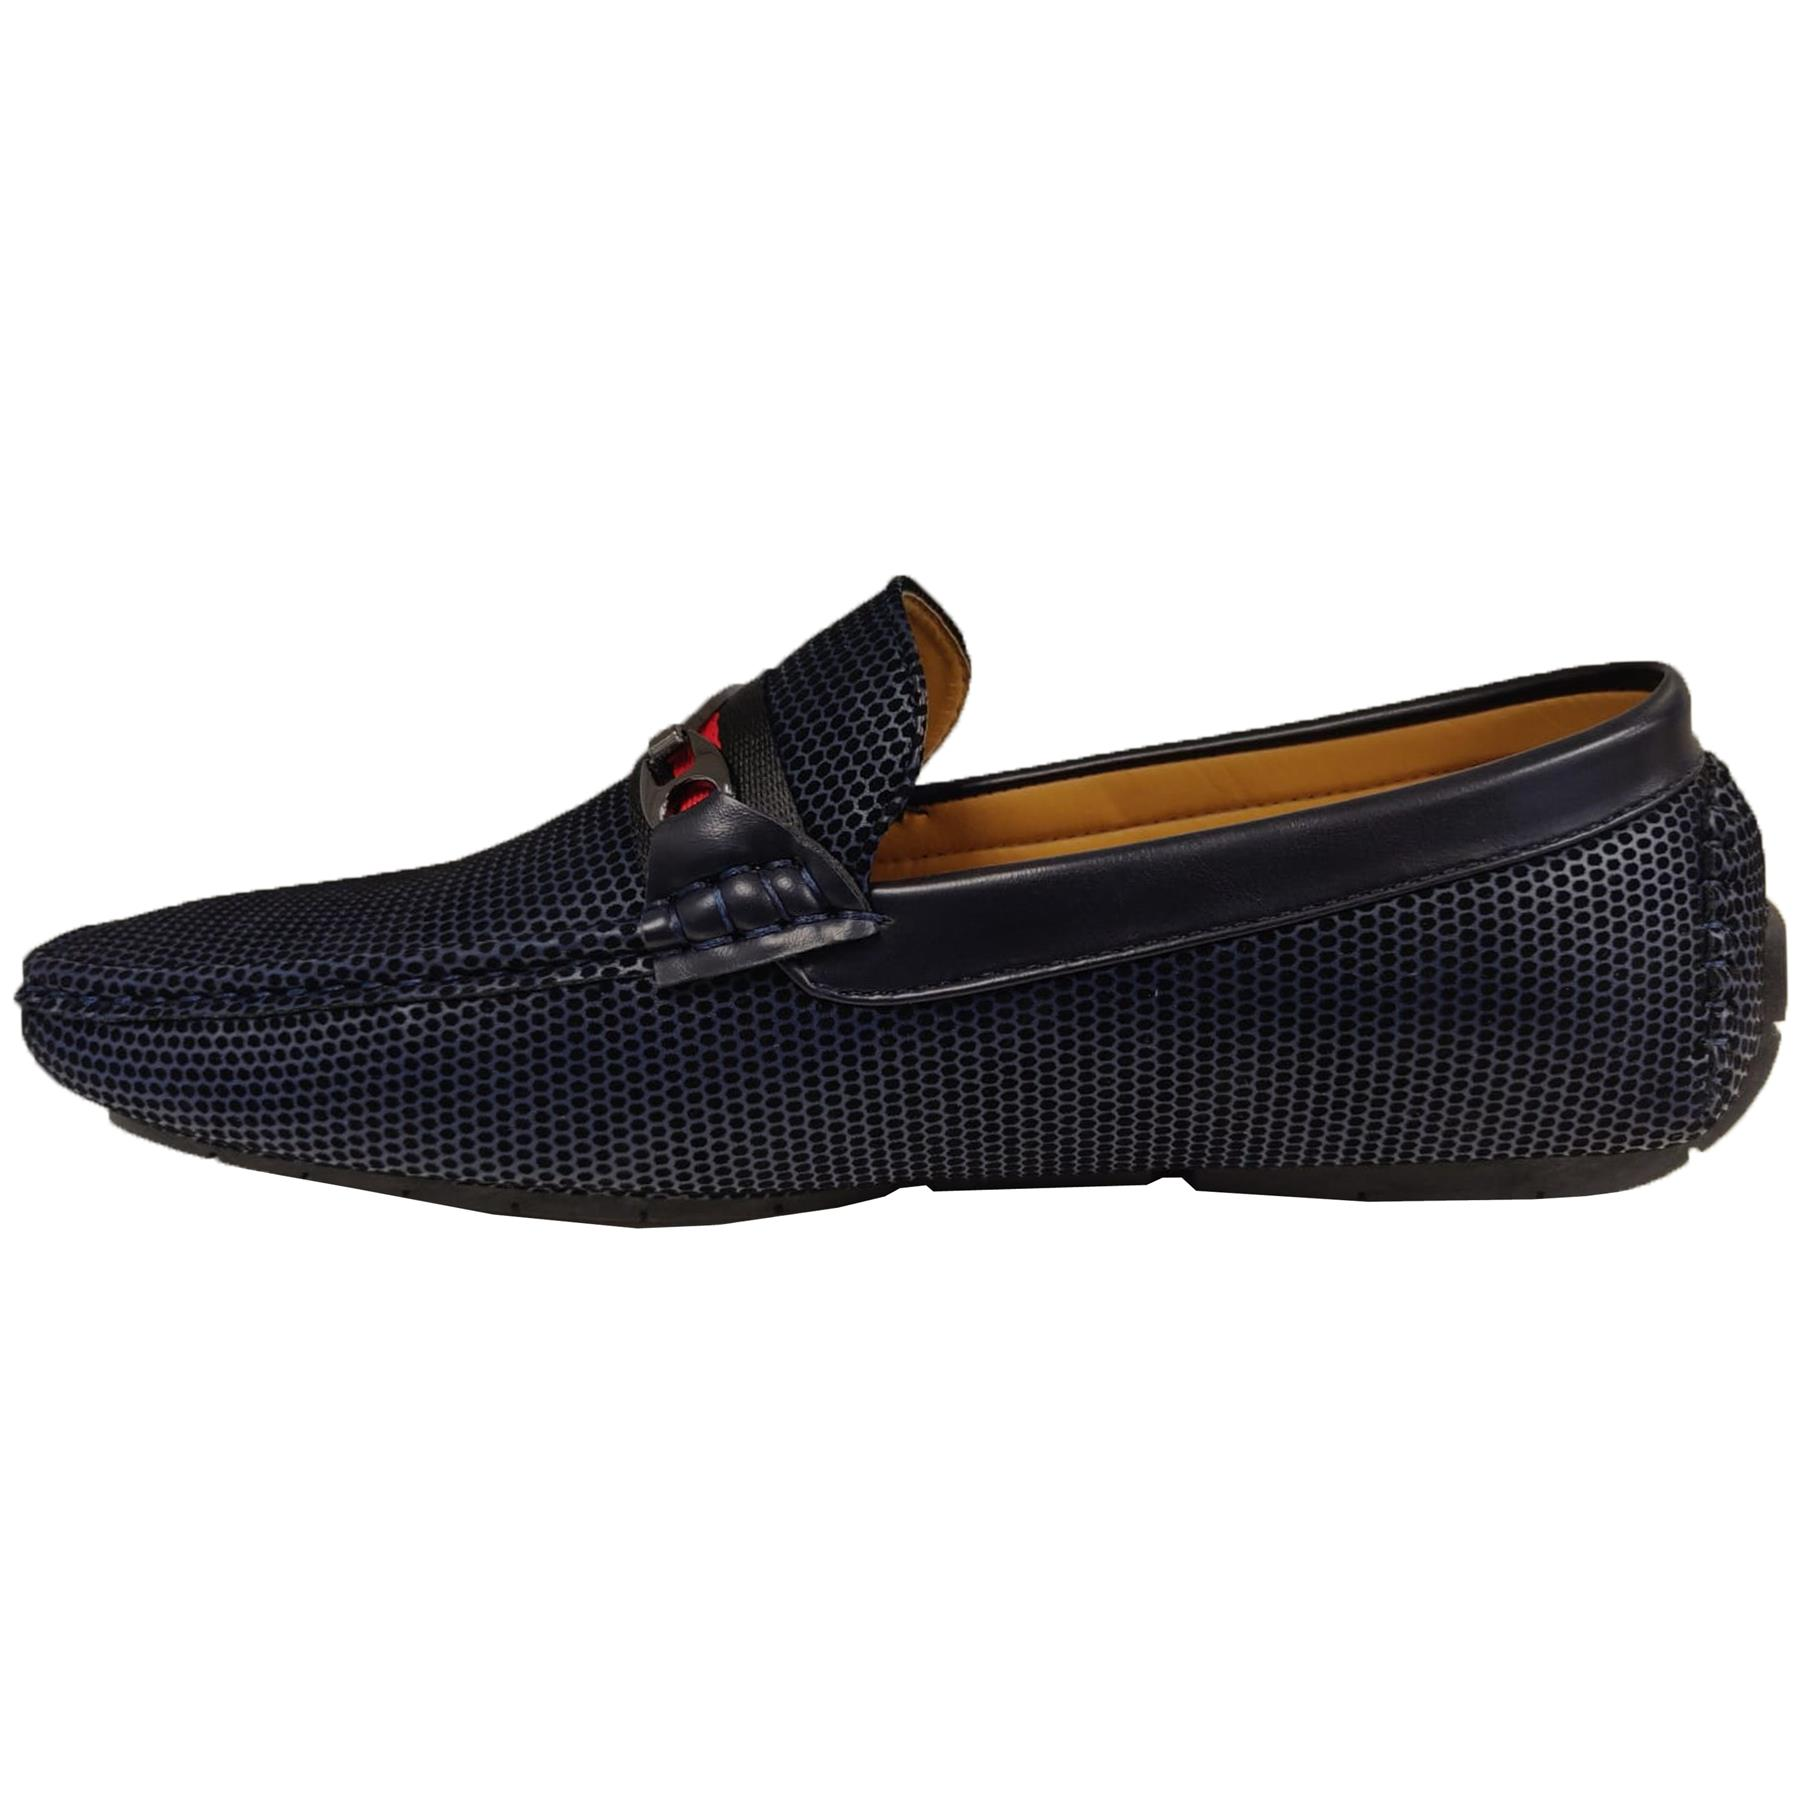 Mens-Slip-Ons-Shoes-Boat-Deck-Driving-Smart-Buckle-Moccasins-Suede-Look-Loafers thumbnail 59